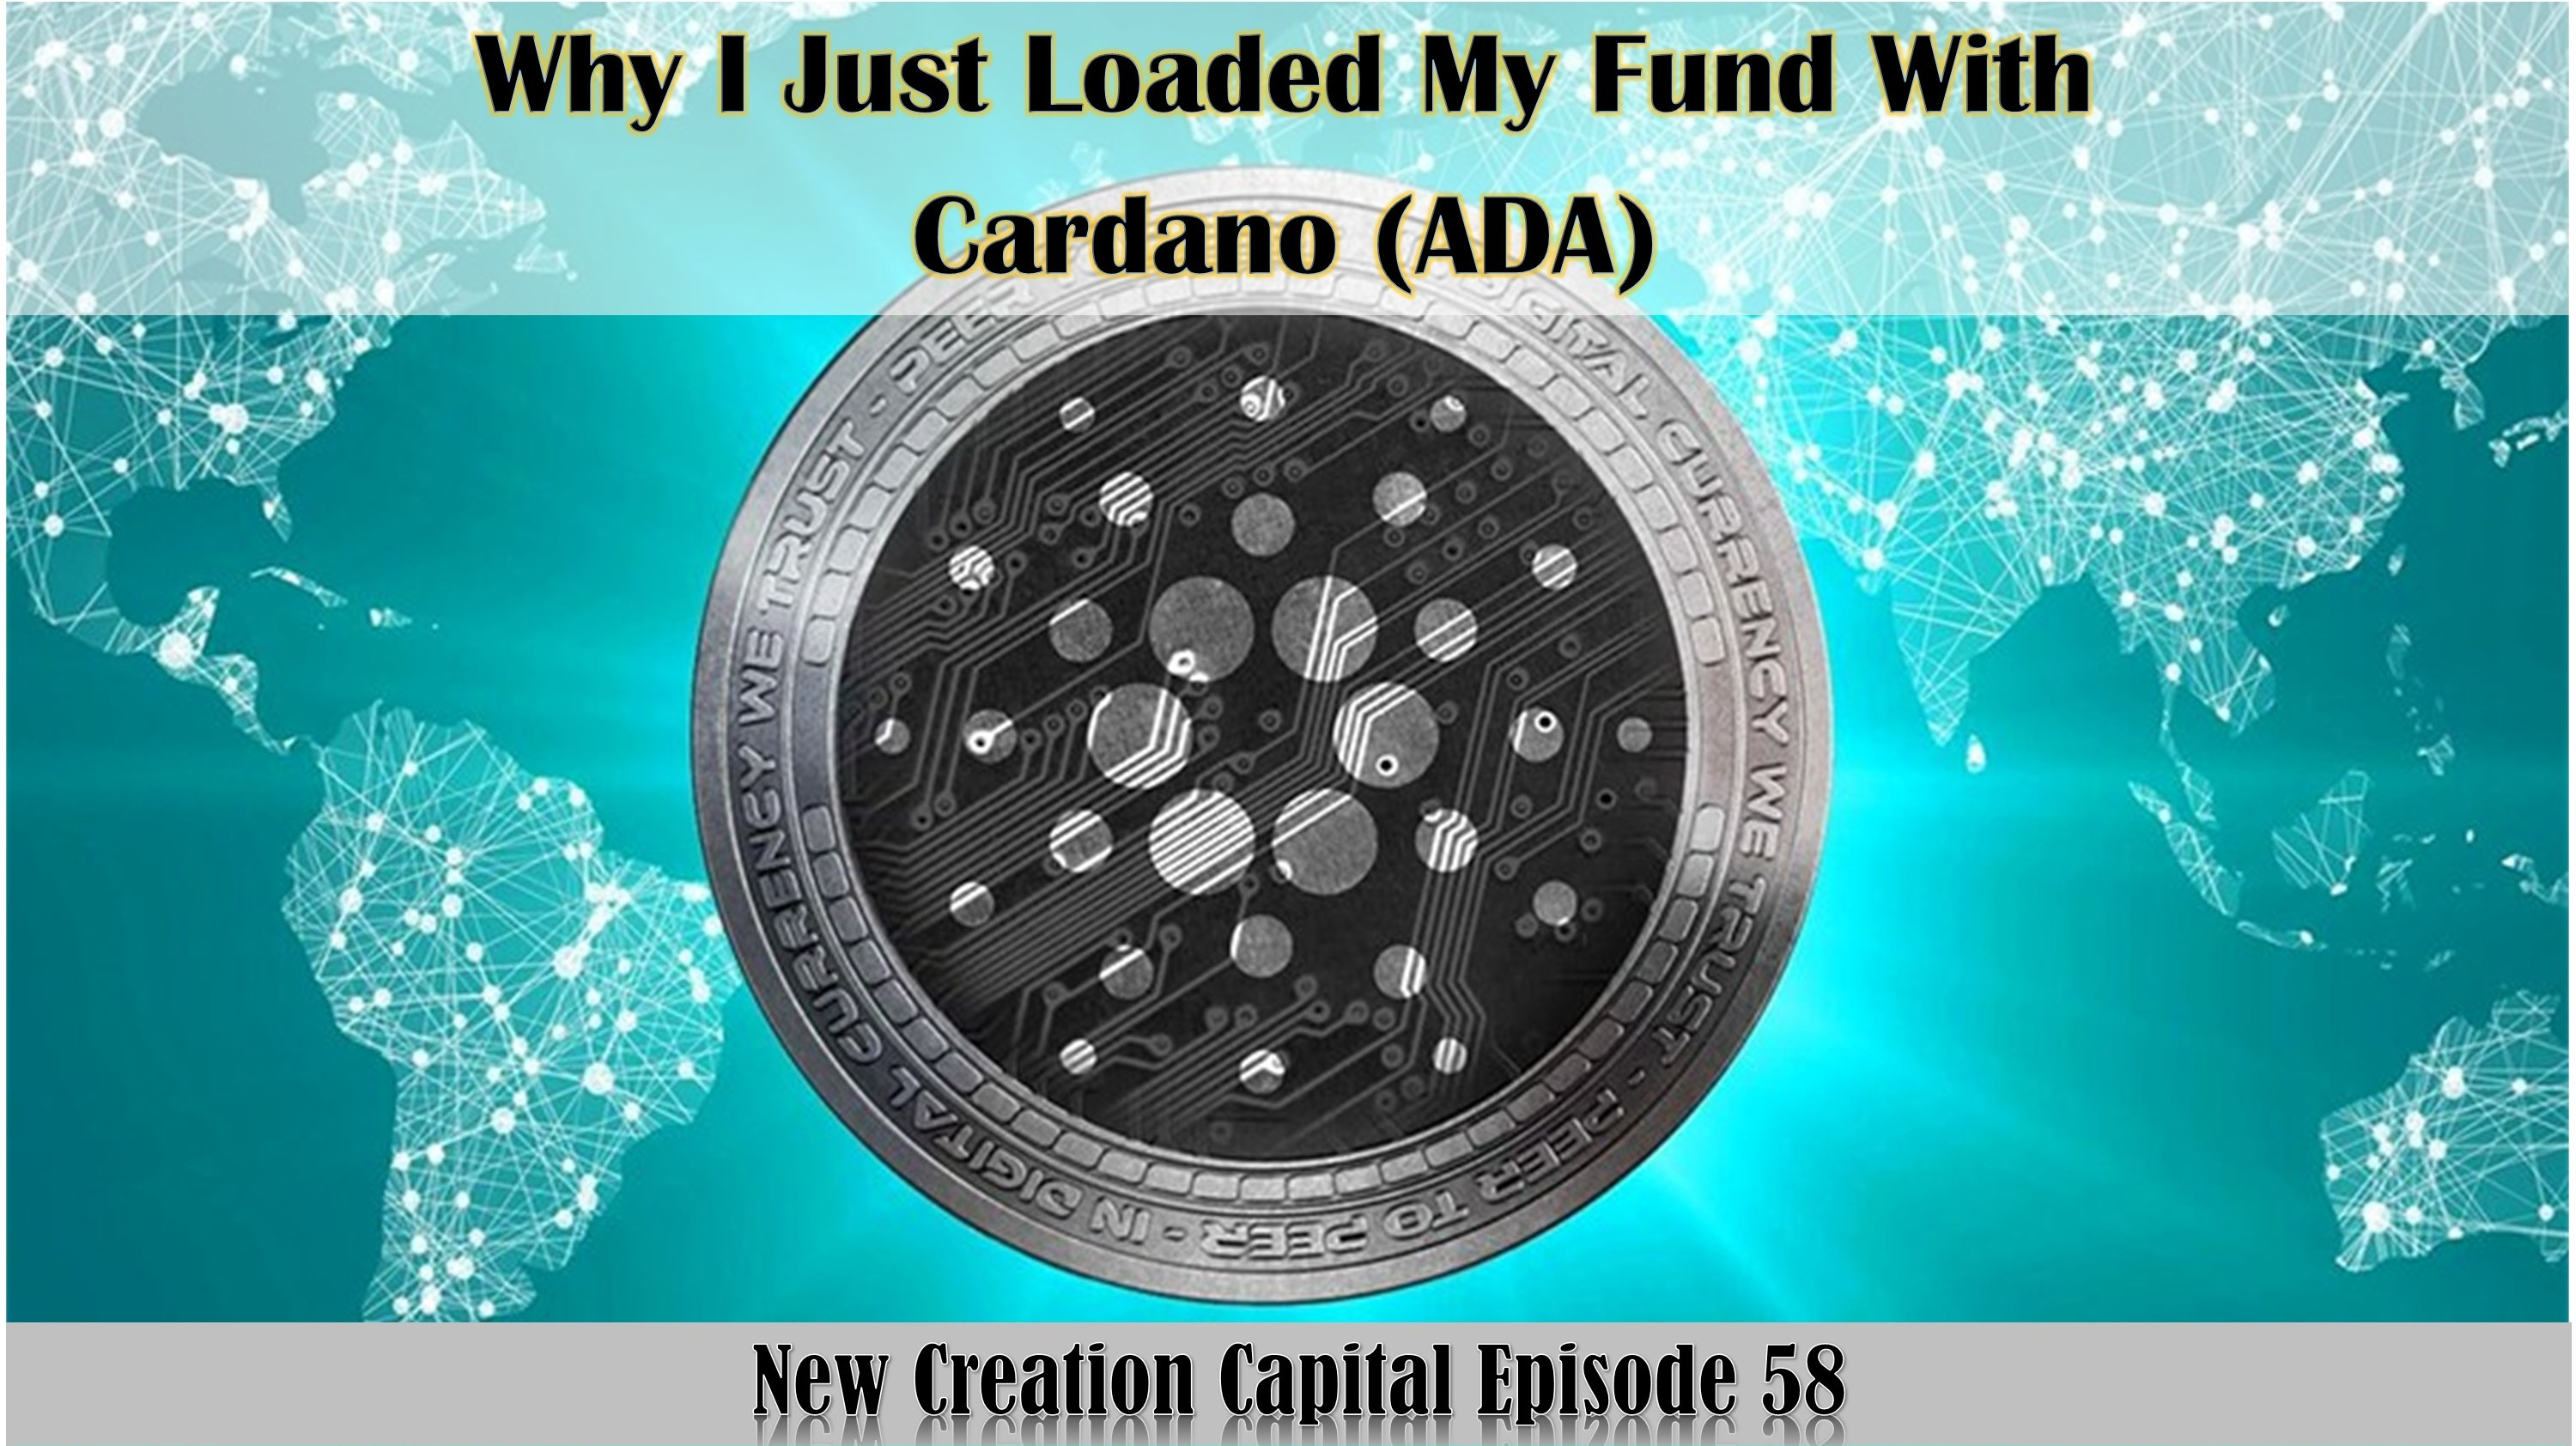 Episode 58: Why I Just Loaded My Bags With Cardano (ADA)